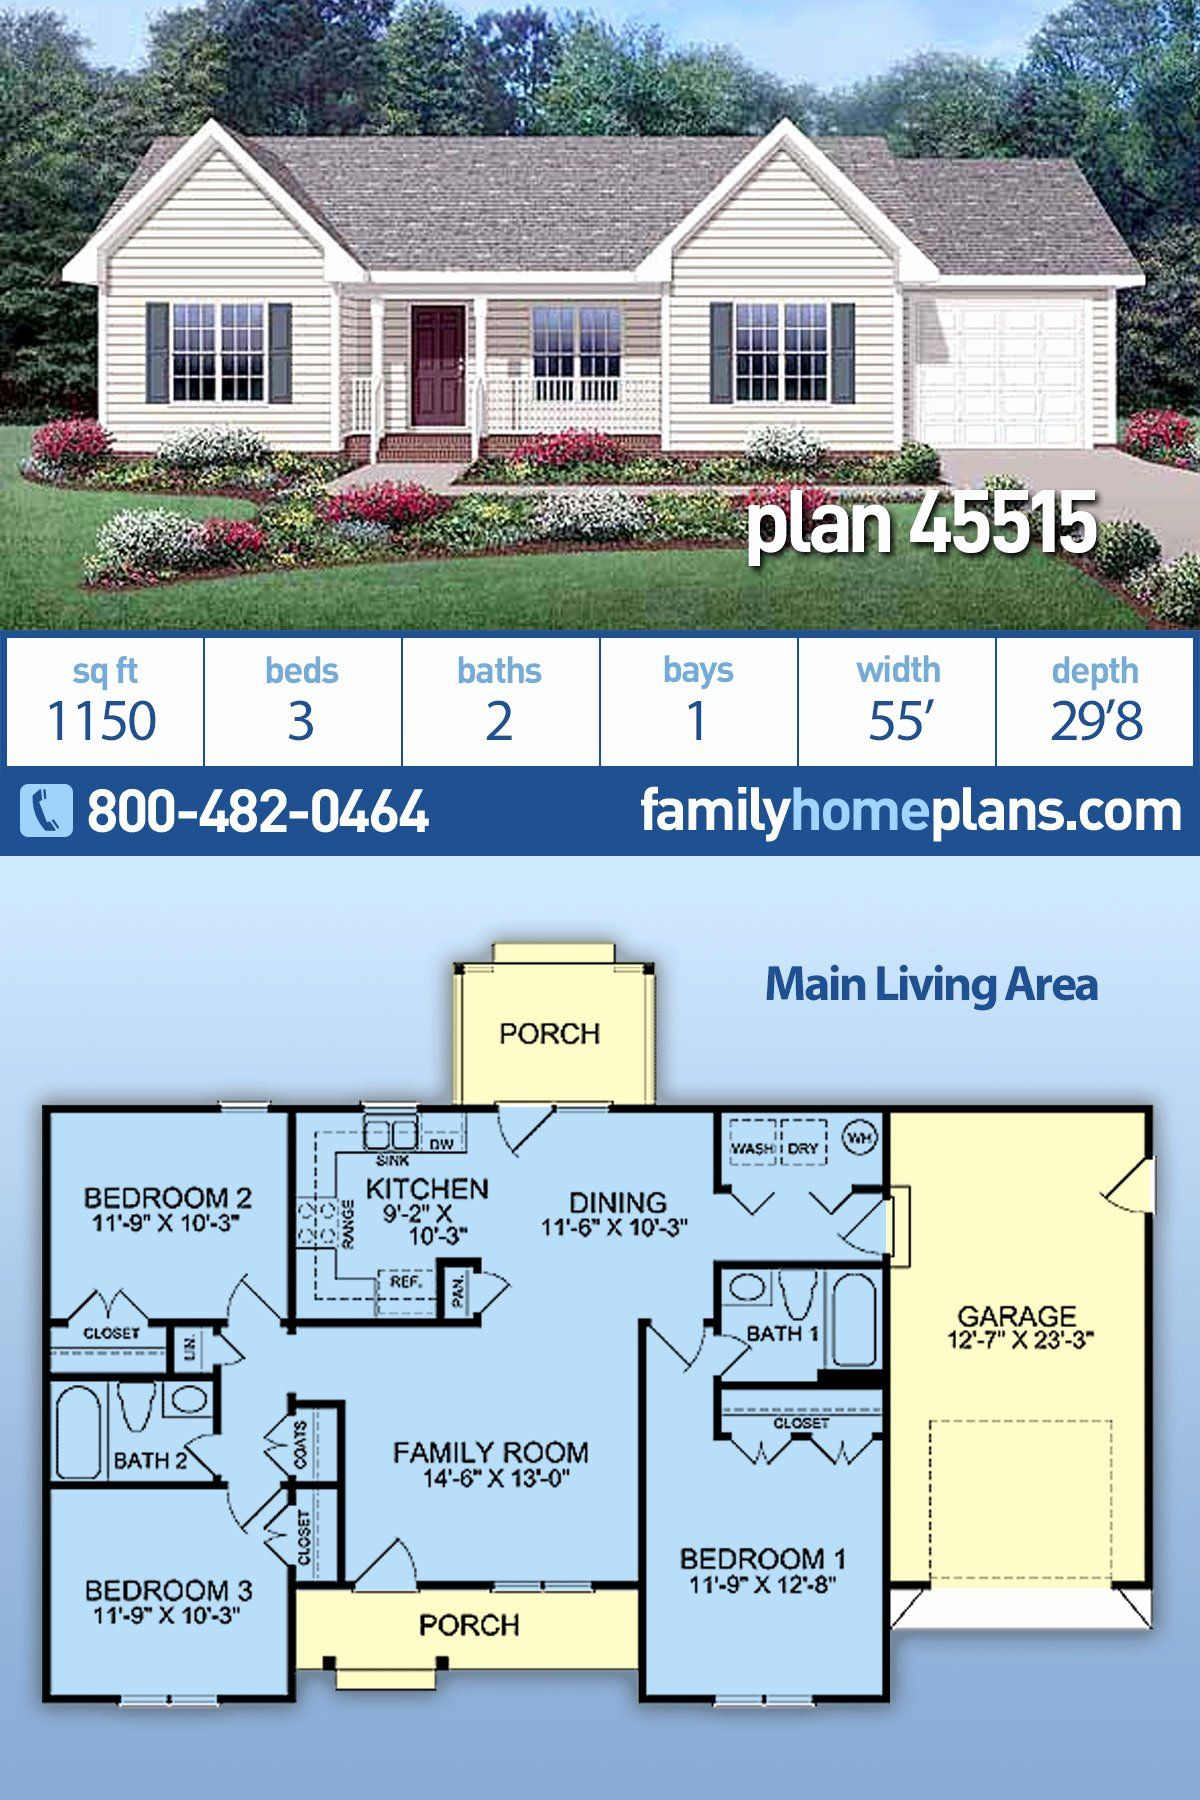 Basic Ranch Style House Plans Inspirational Ranch Style House Plan With 3 Bed 2 Bath 1 Car Garage In 2020 Family House Plans Ranch Style House Plans Sims House Plans